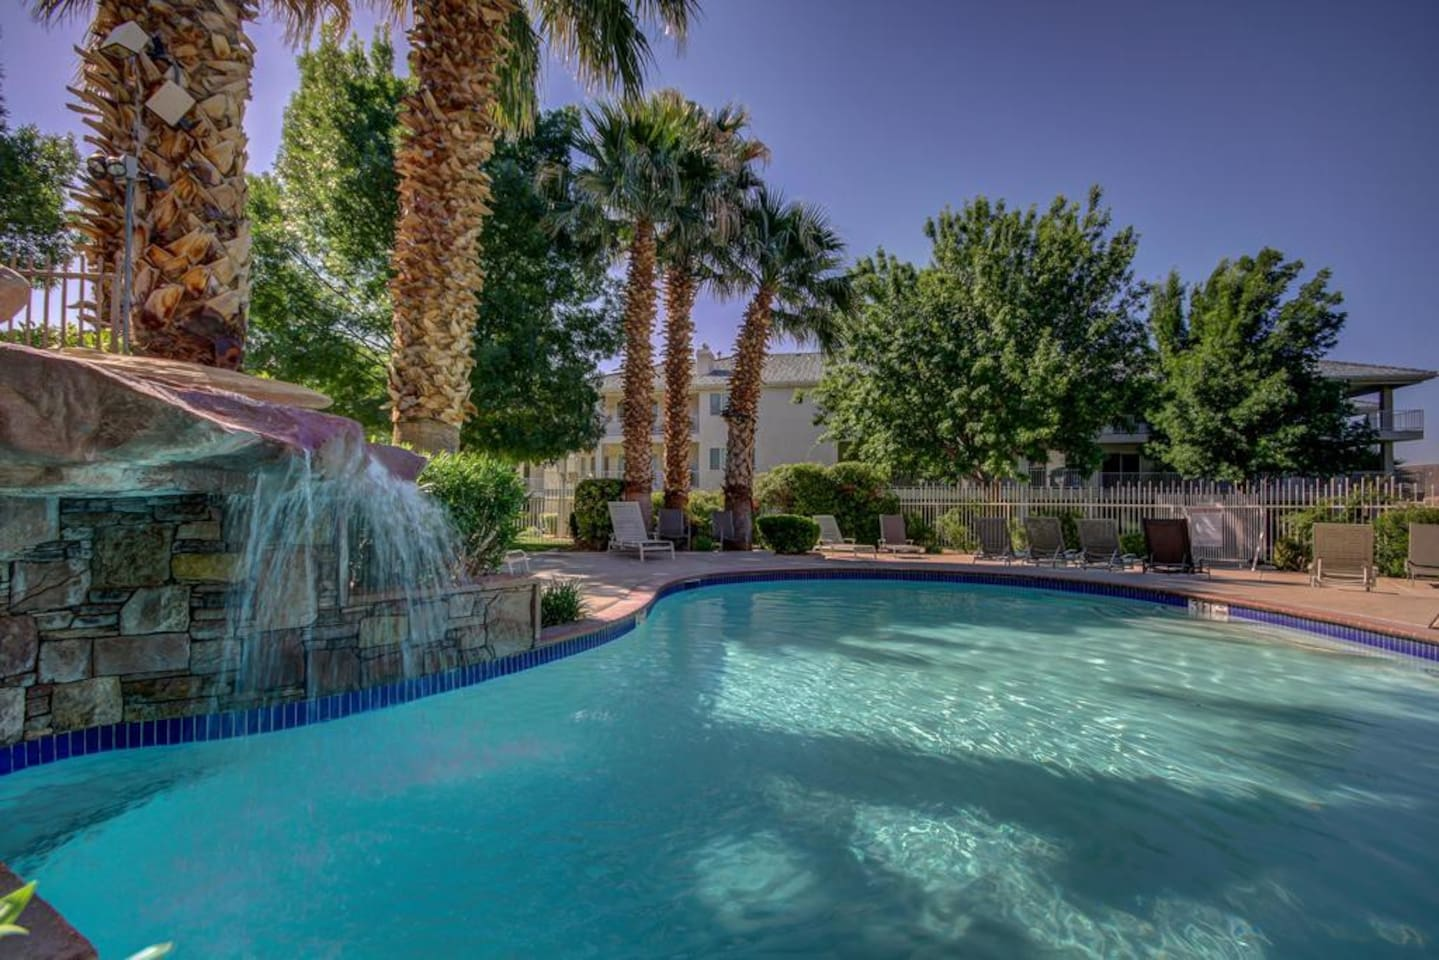 Cool off in one of five pools!